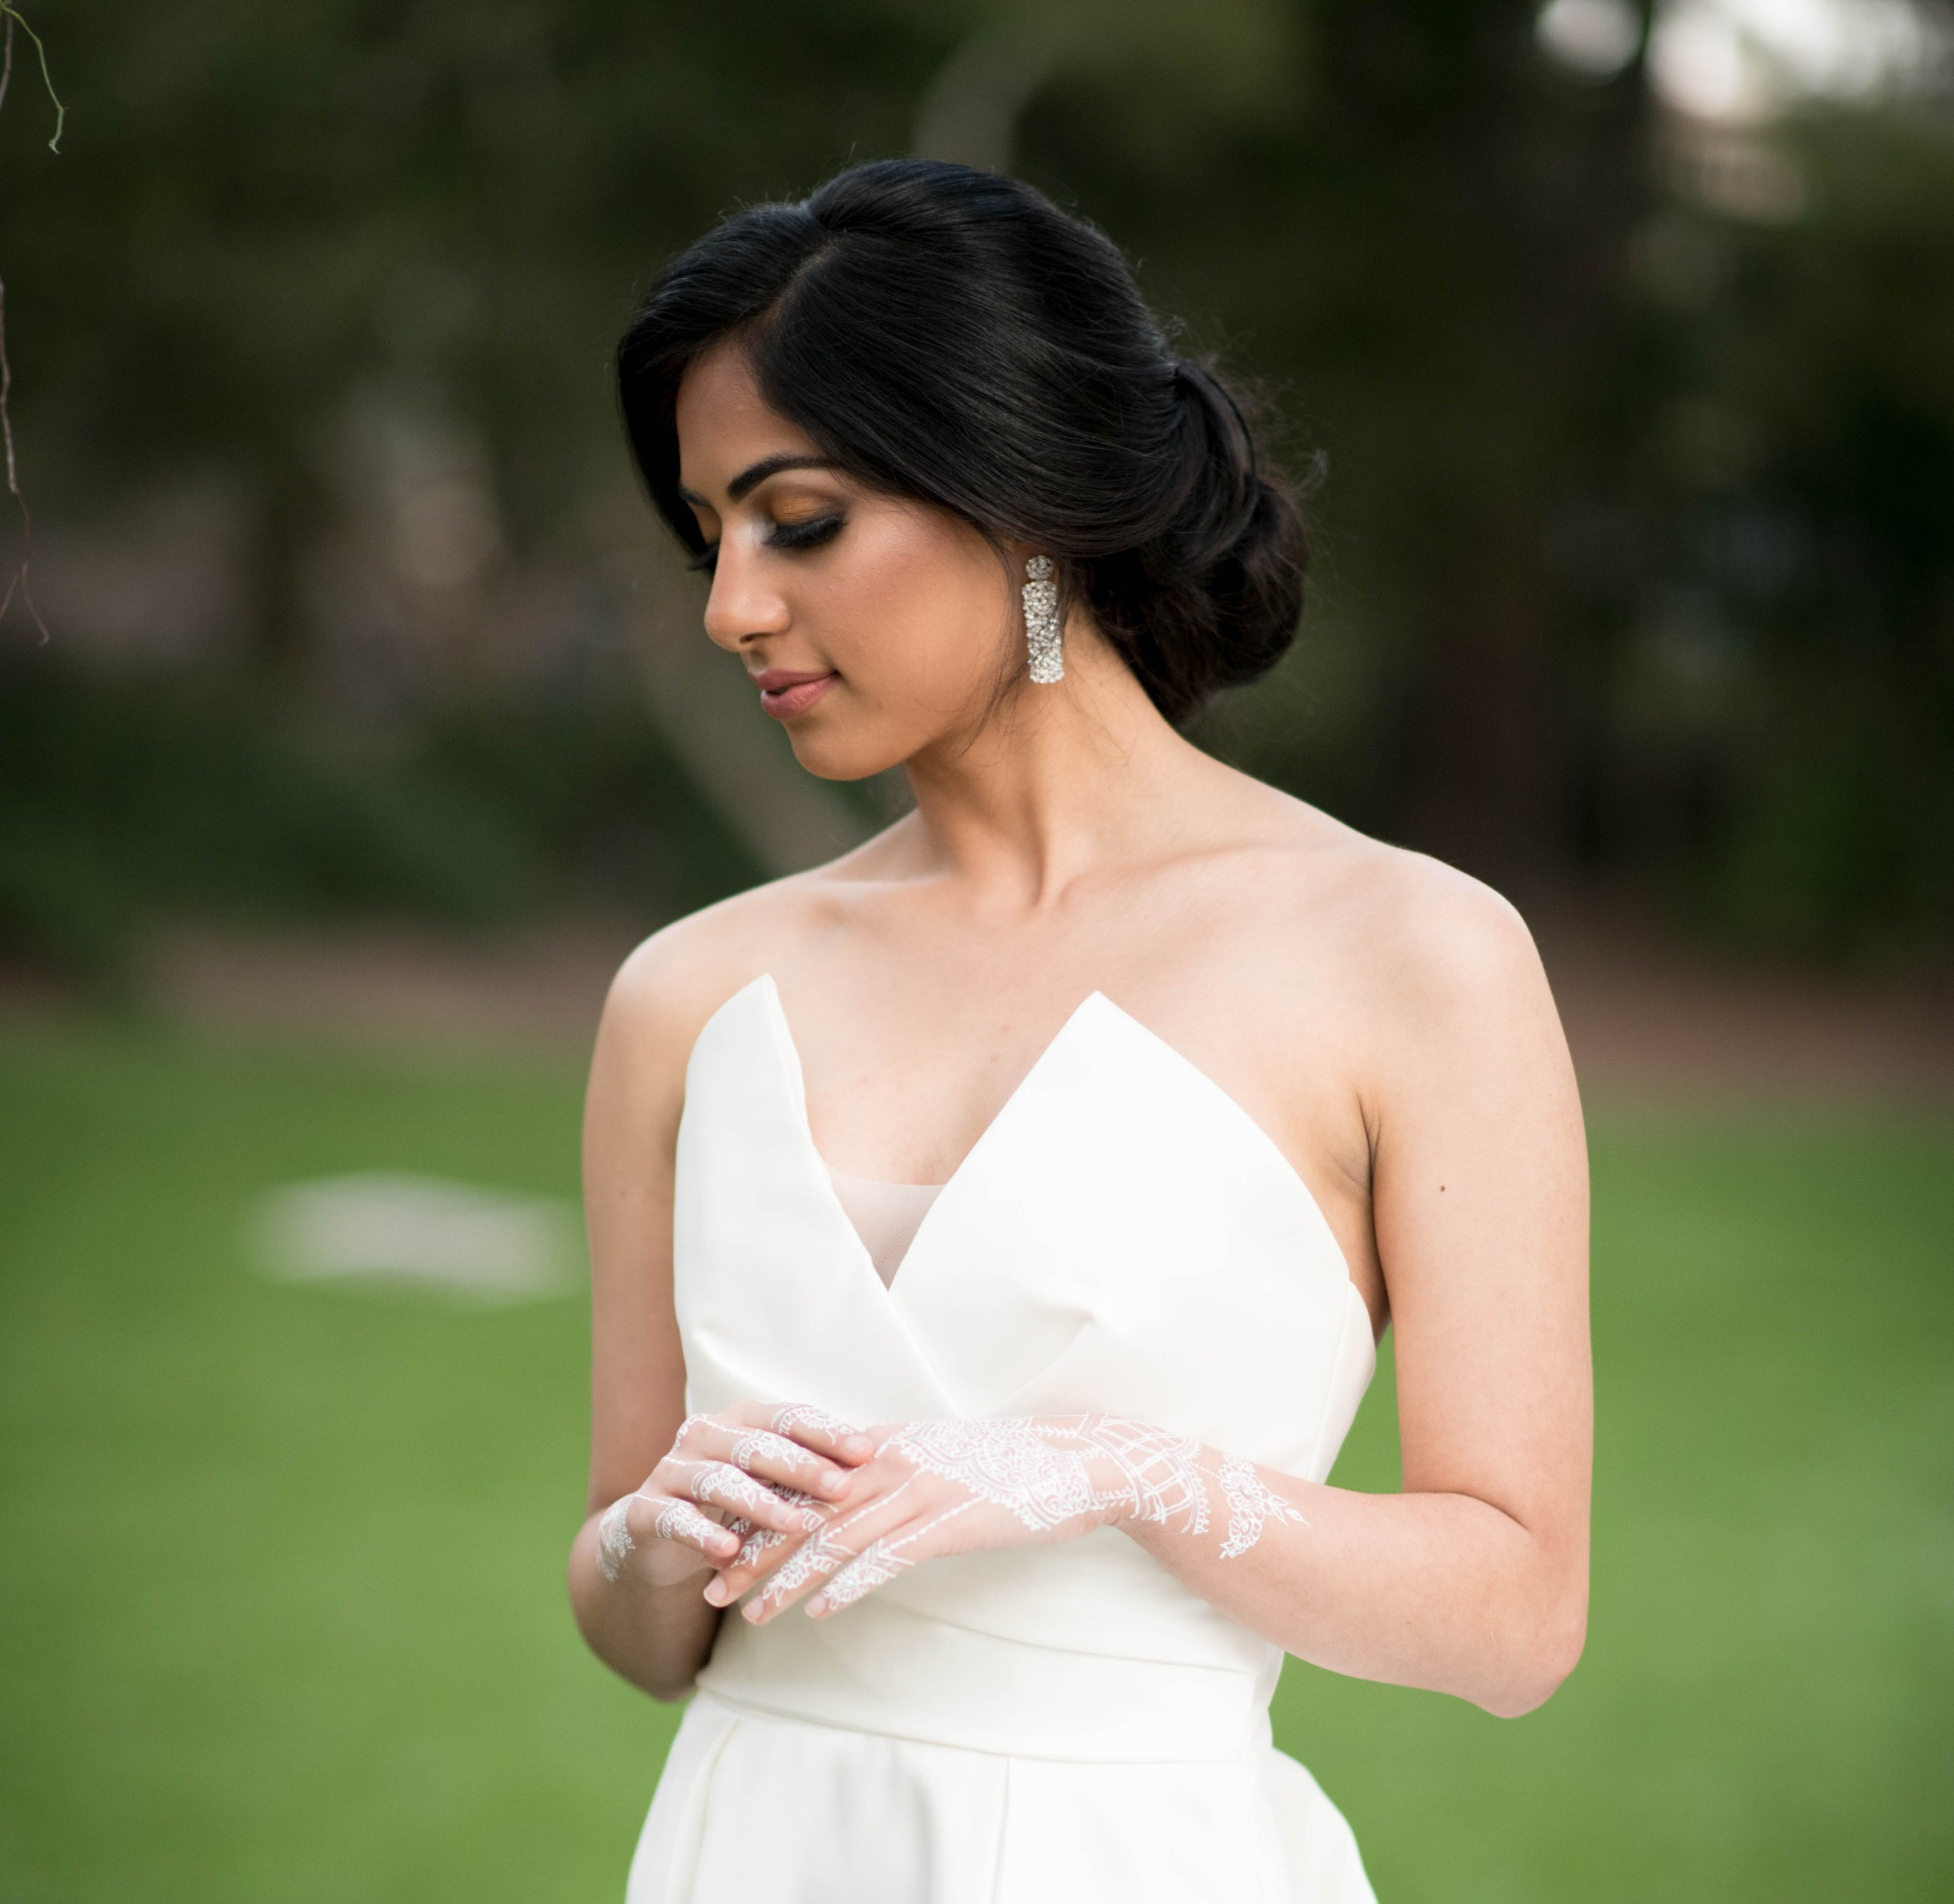 Bride Full Day Makeup & Hair Experience